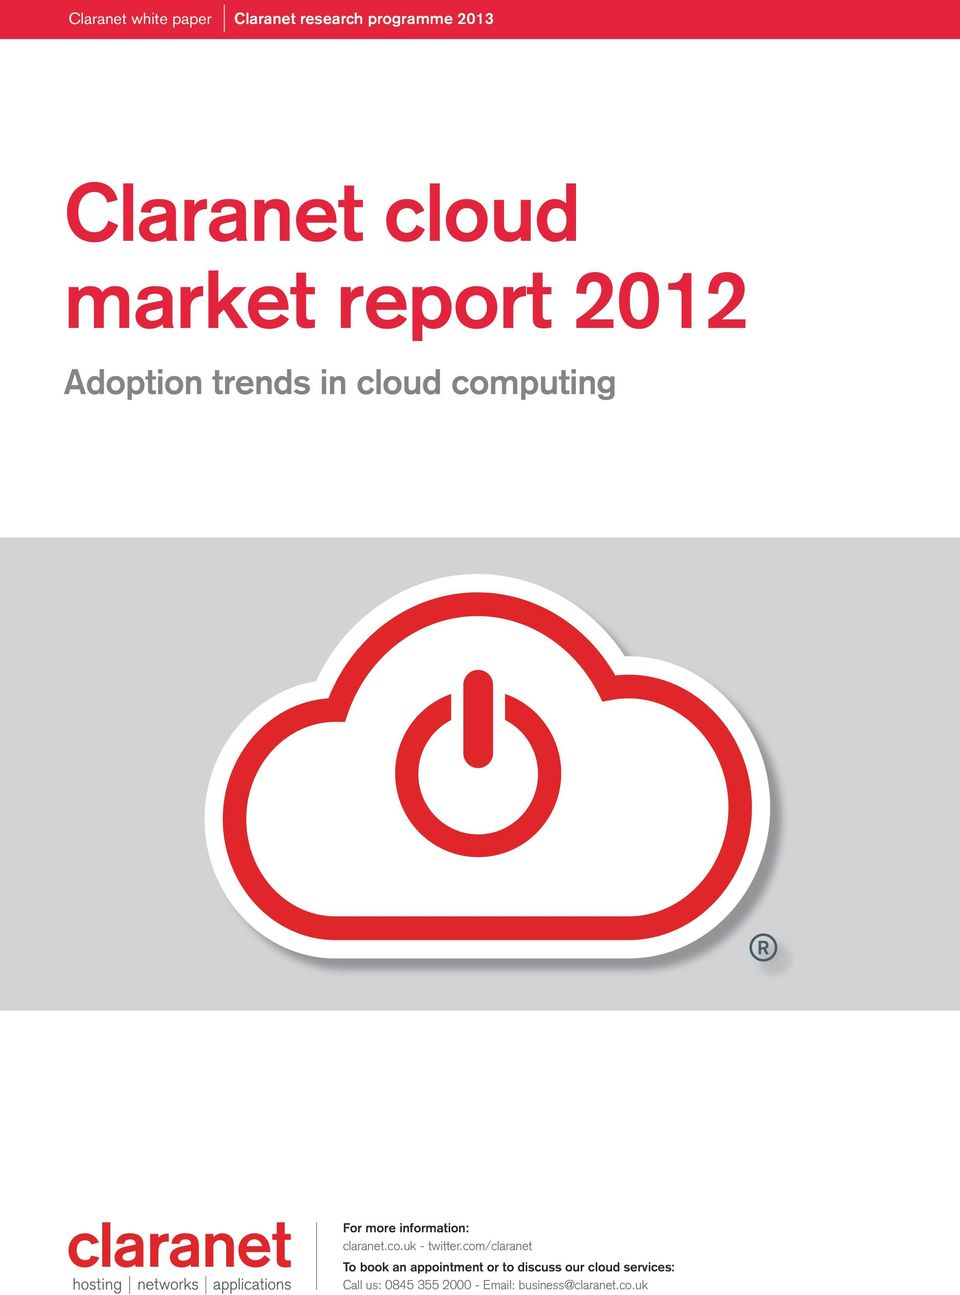 com/claranet To book an appointment or to discuss our cloud